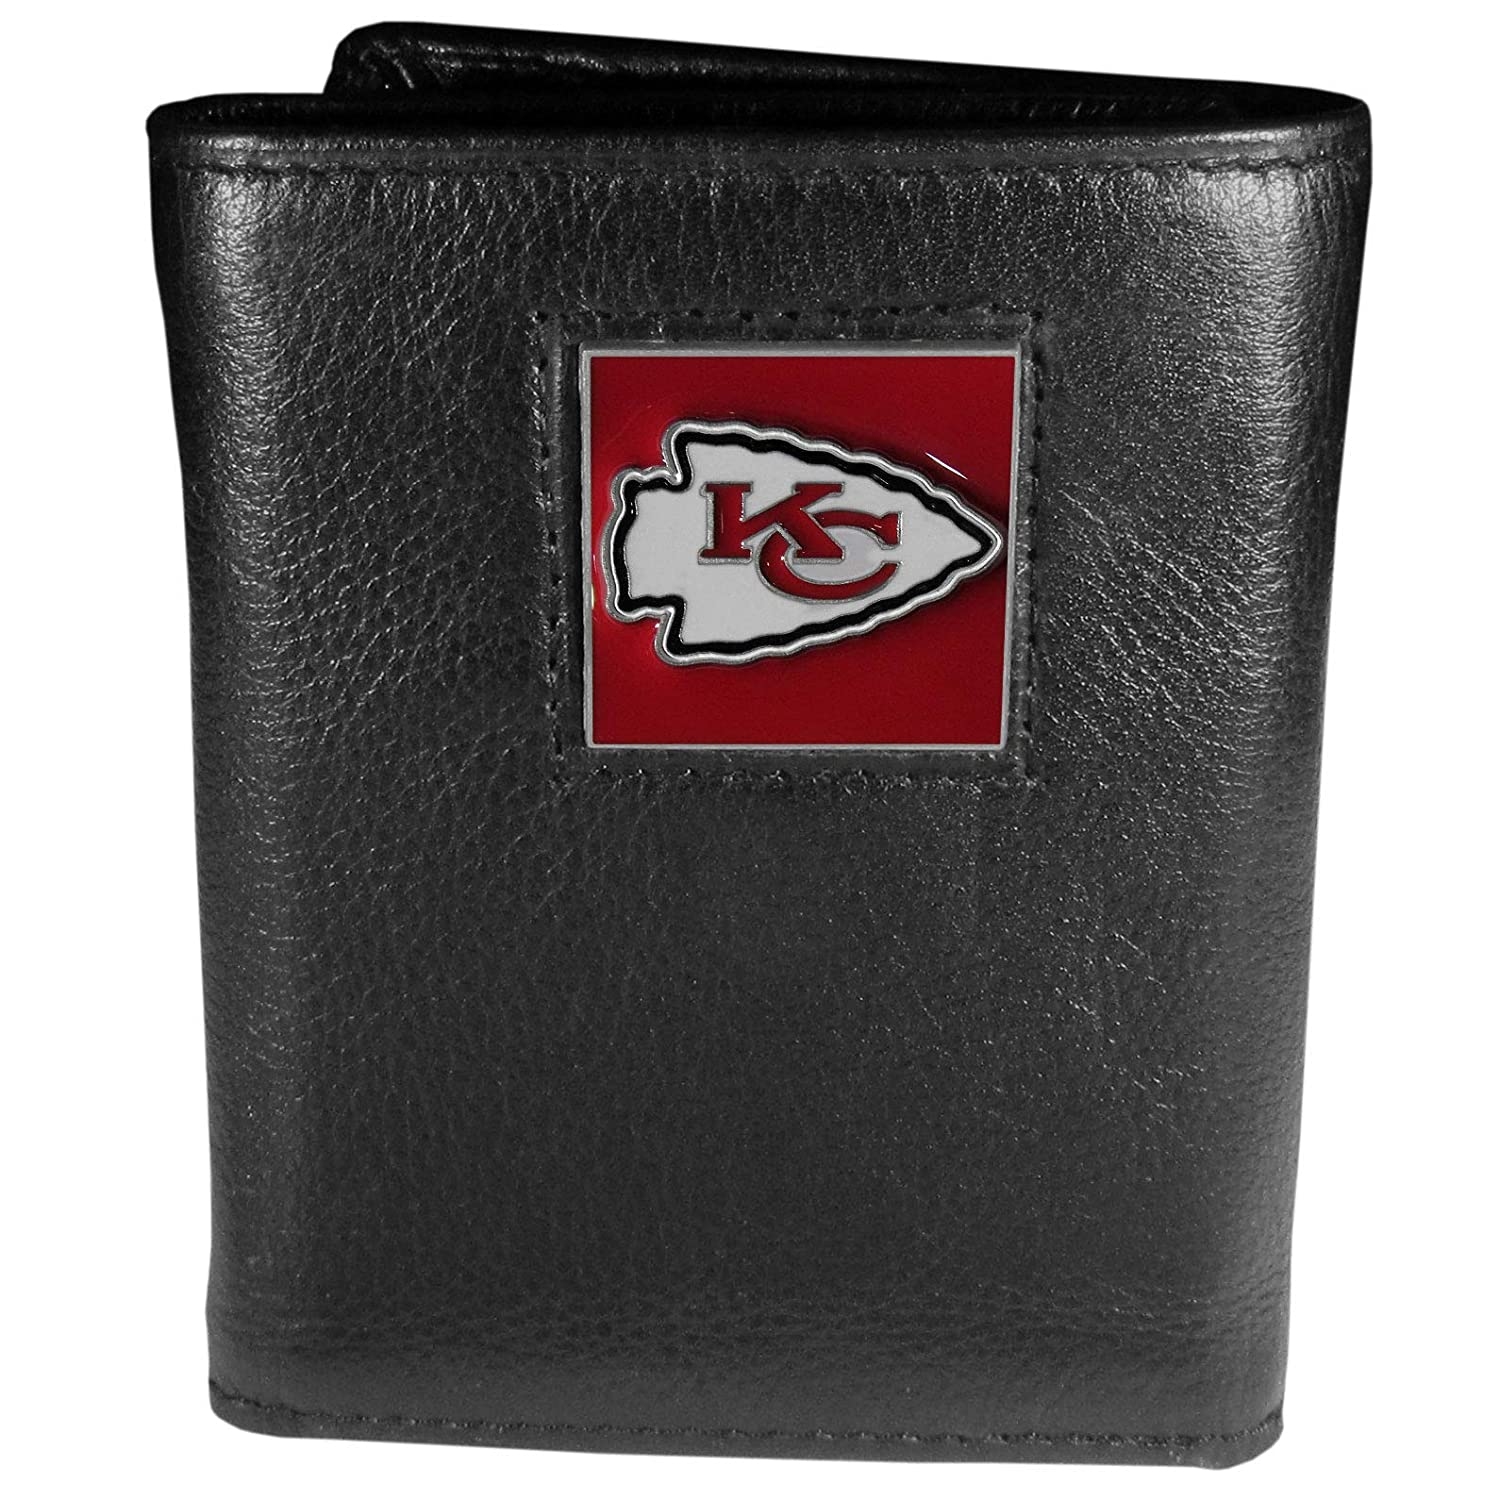 Siskiyou NFL Unisex Embossed Leather Tri-fold Wallet